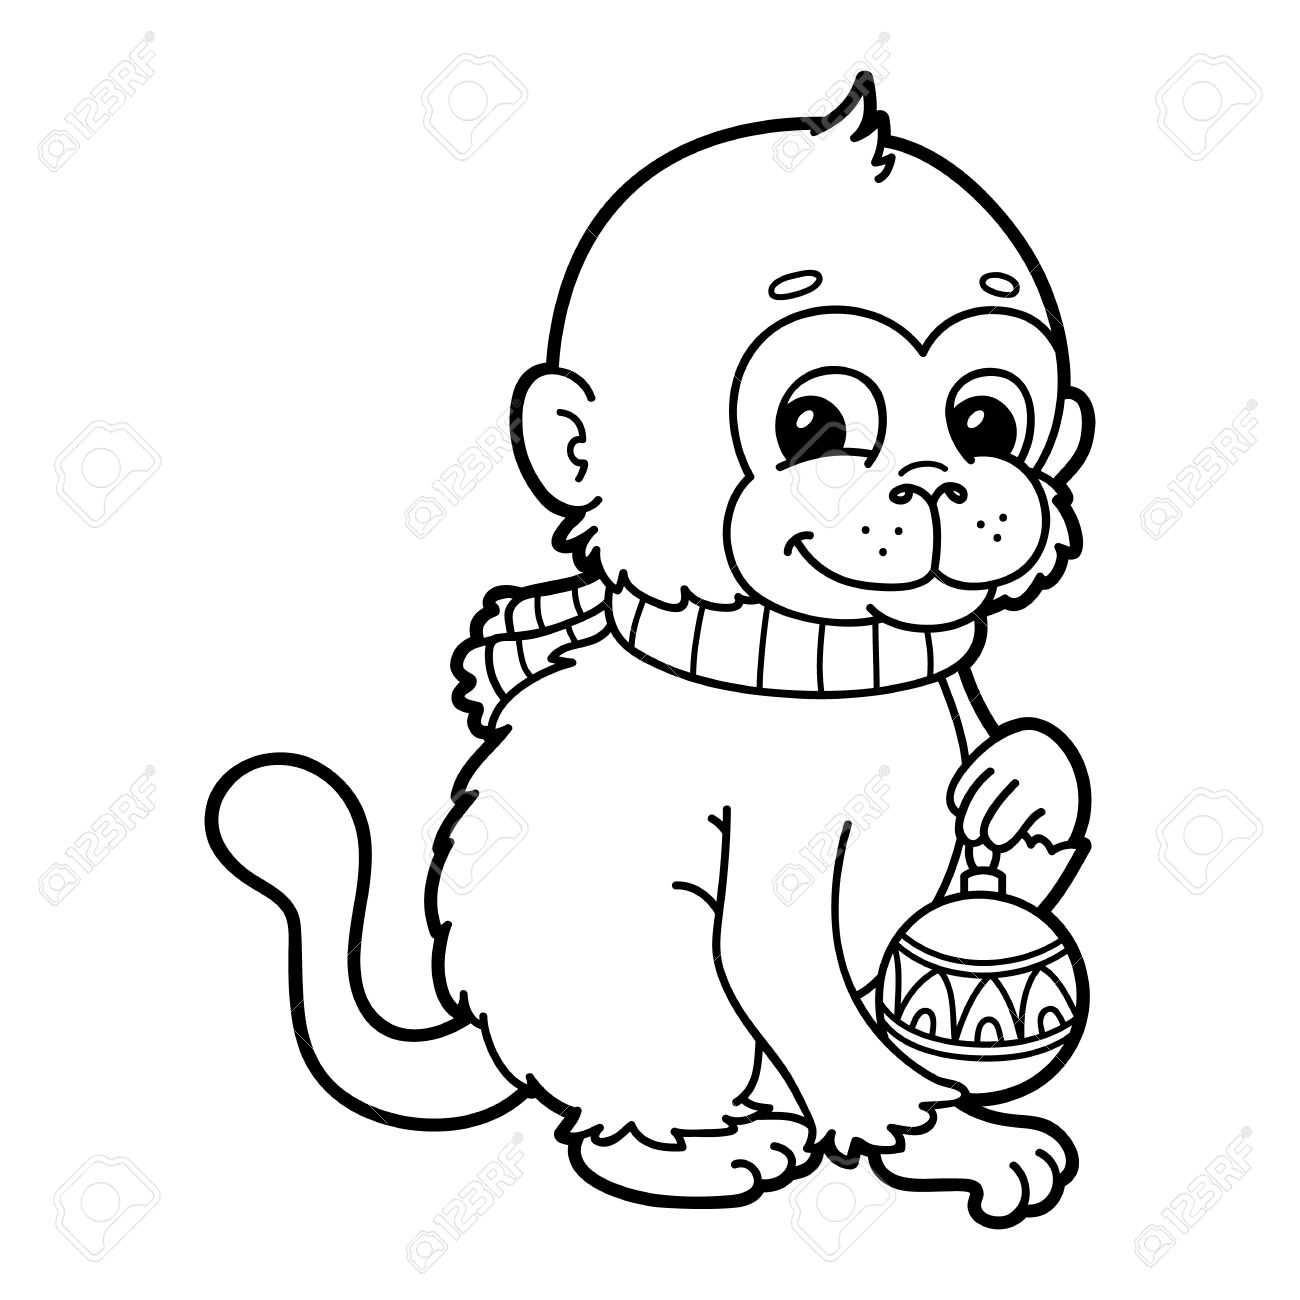 1300x1300 Funny Monkey. Vector Illustration Coloring Page Of Happy Cartoon